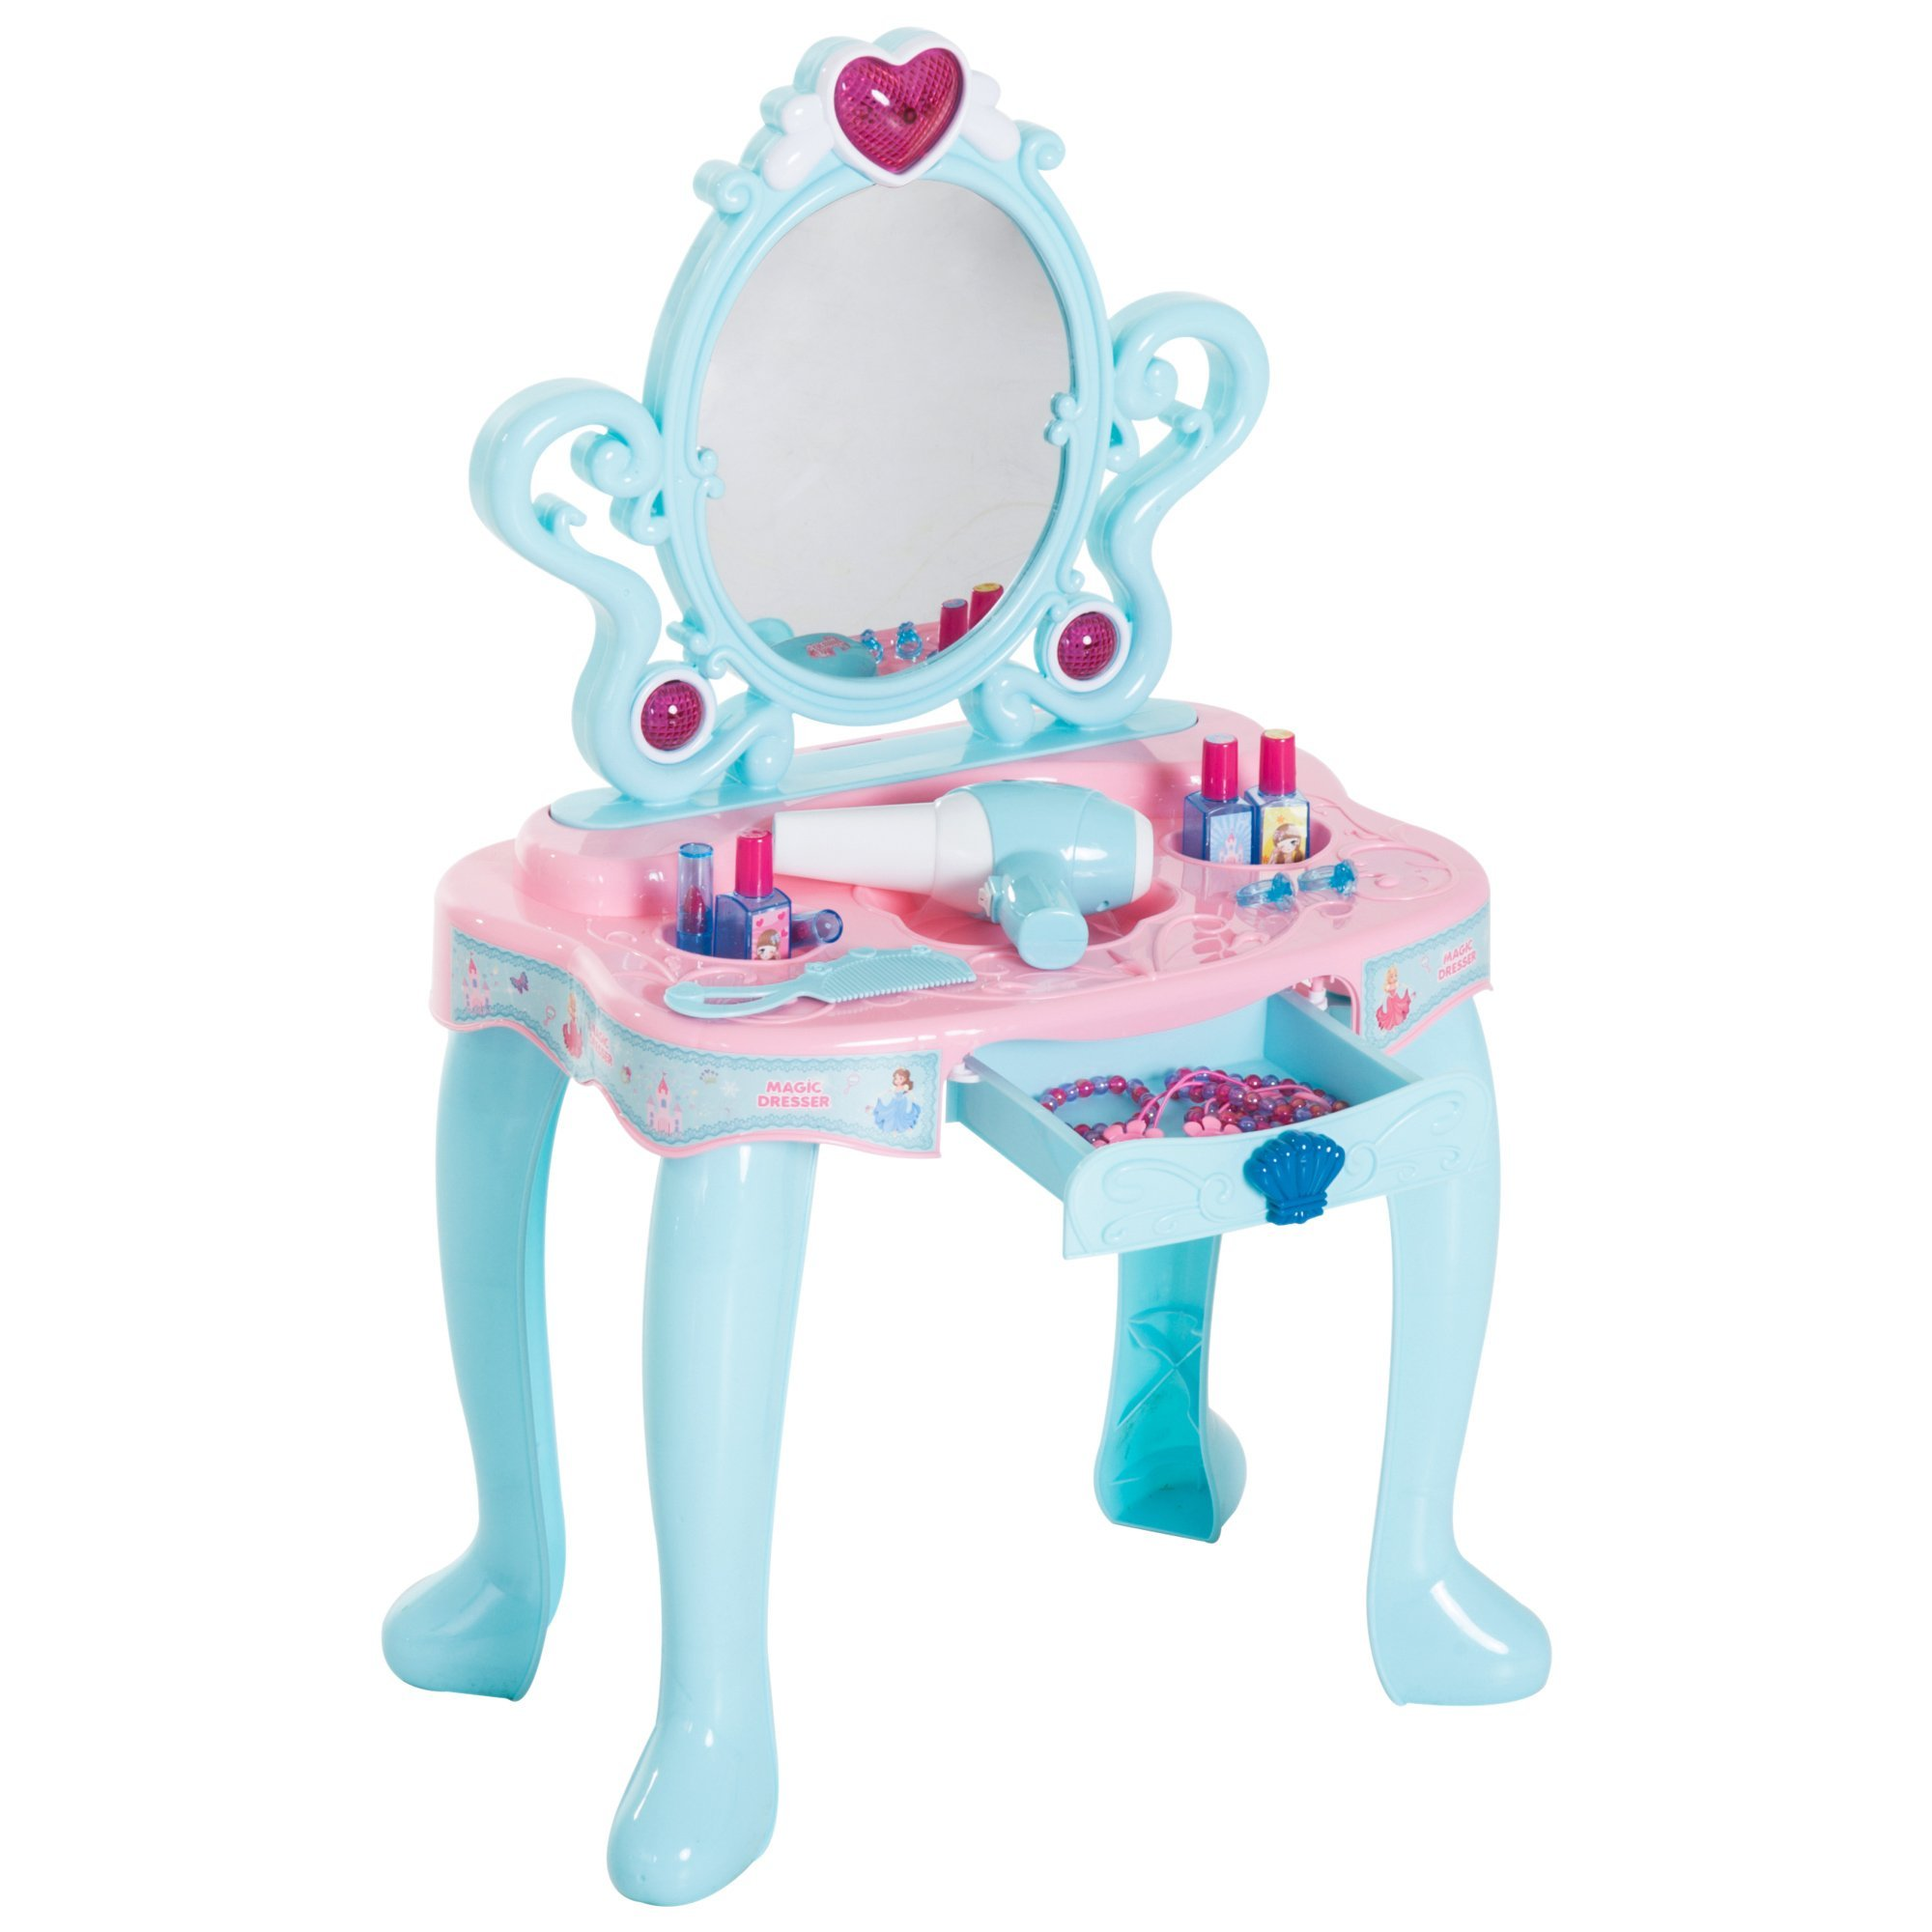 Qaba Kids Fashion Pretend Play Set Princess Vanity Table with Lights, Sounds, and Accessories - Light Blue / Pink by Qaba